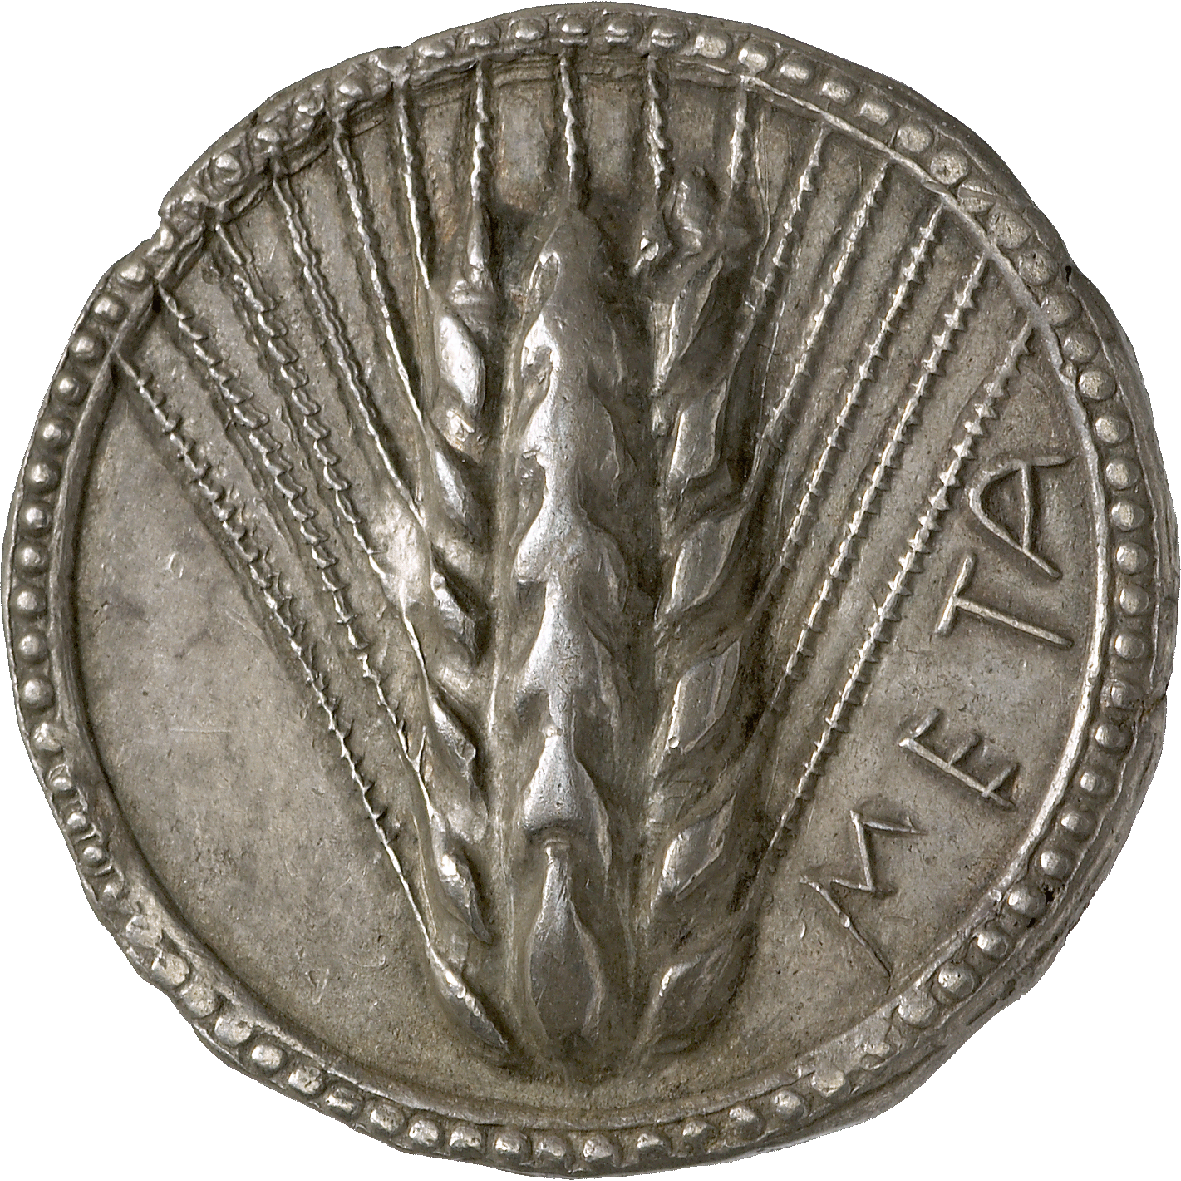 Southern Italy, Lucania, Metapontum, Nomos (obverse)